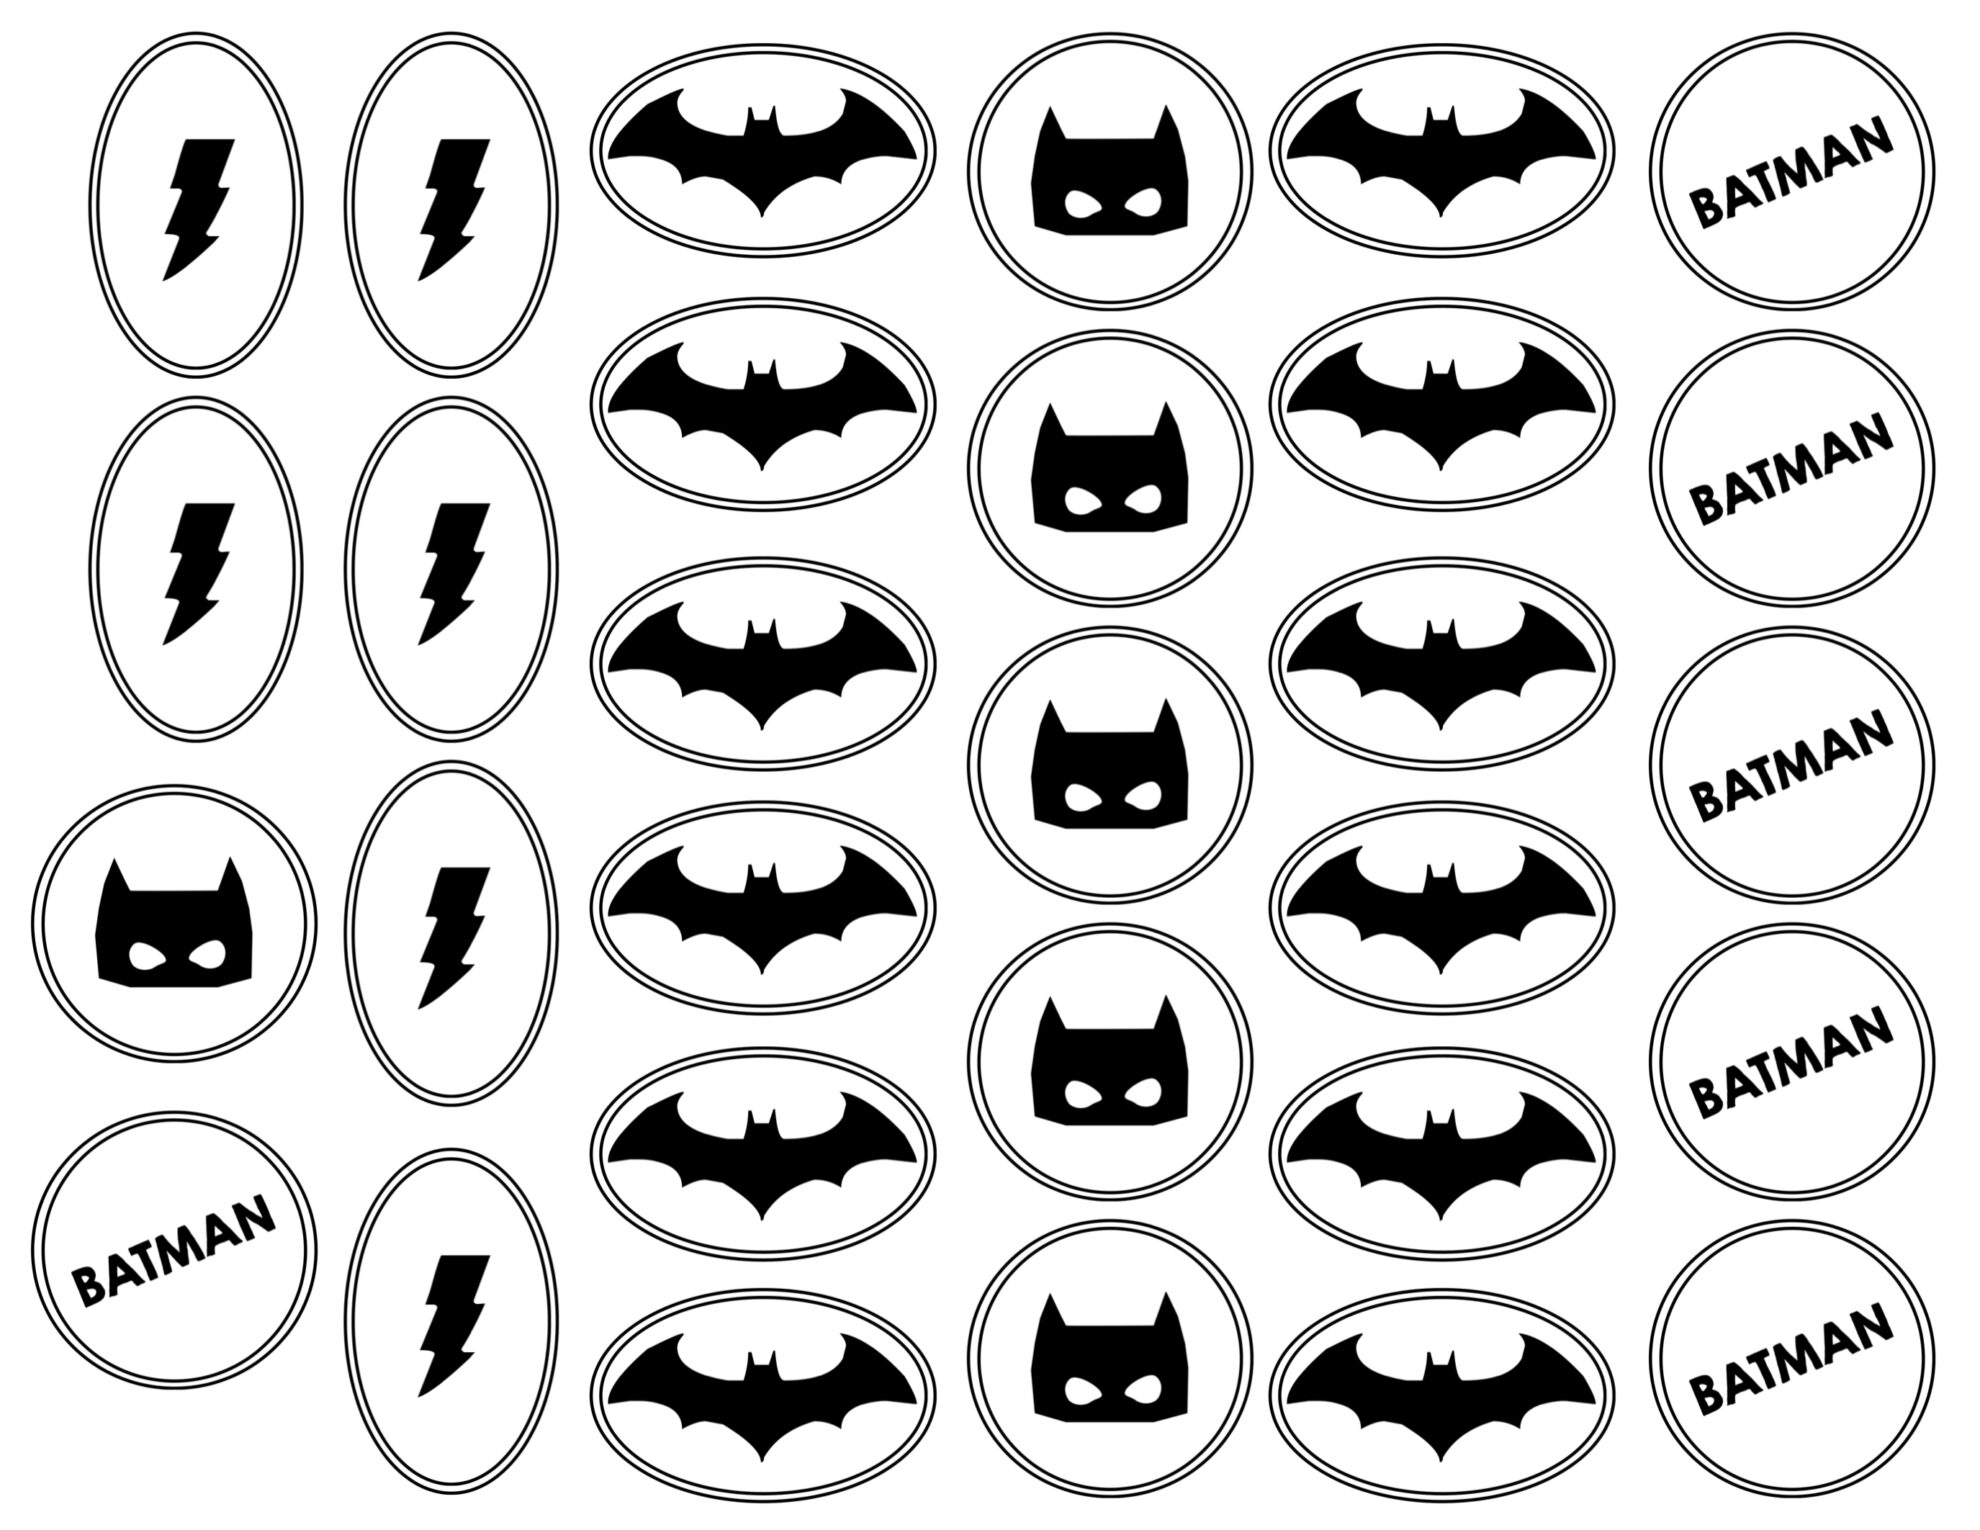 graphic about Batman Cupcake Toppers Printable identify Batman Cupcake Topper Printables - Paper Path Style and design